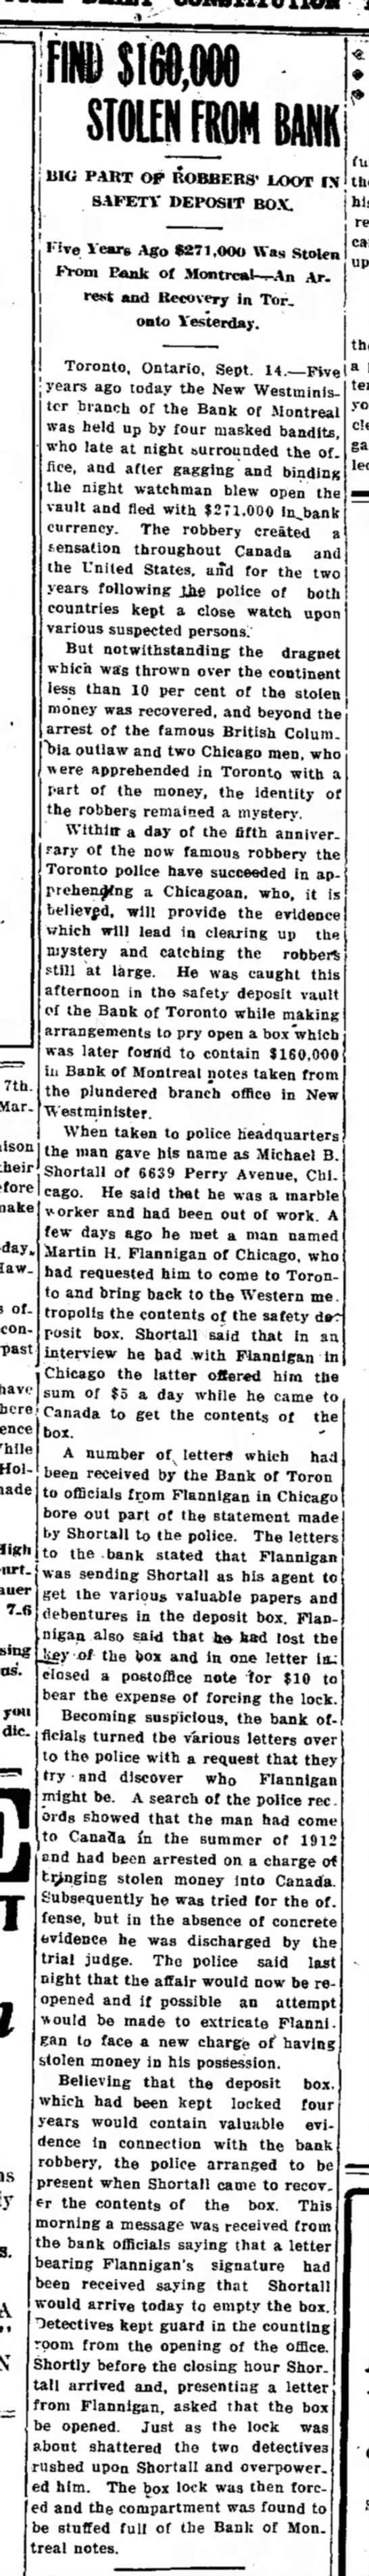 9/14/1916 Robbery Loot found